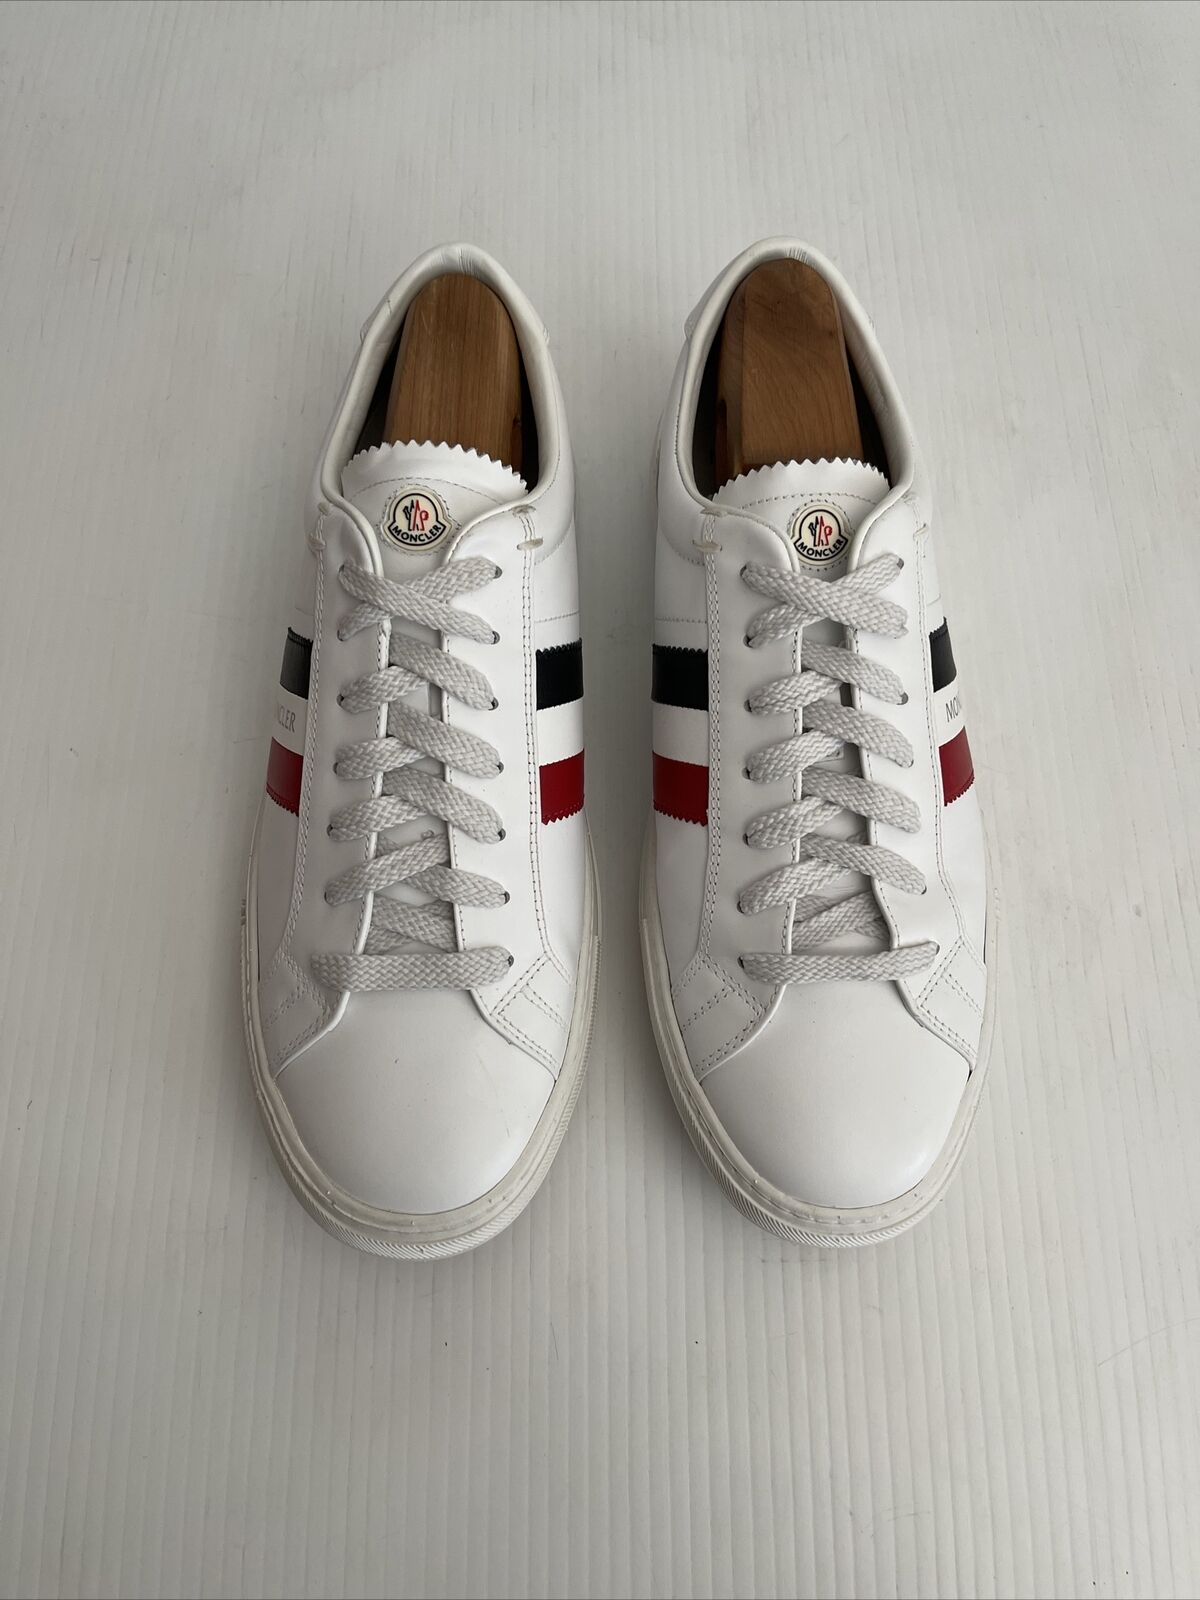 Moncler Mens 'New Monaco' Low Top Sneaker - White / Red / Blue - 43 / 10US (A25)